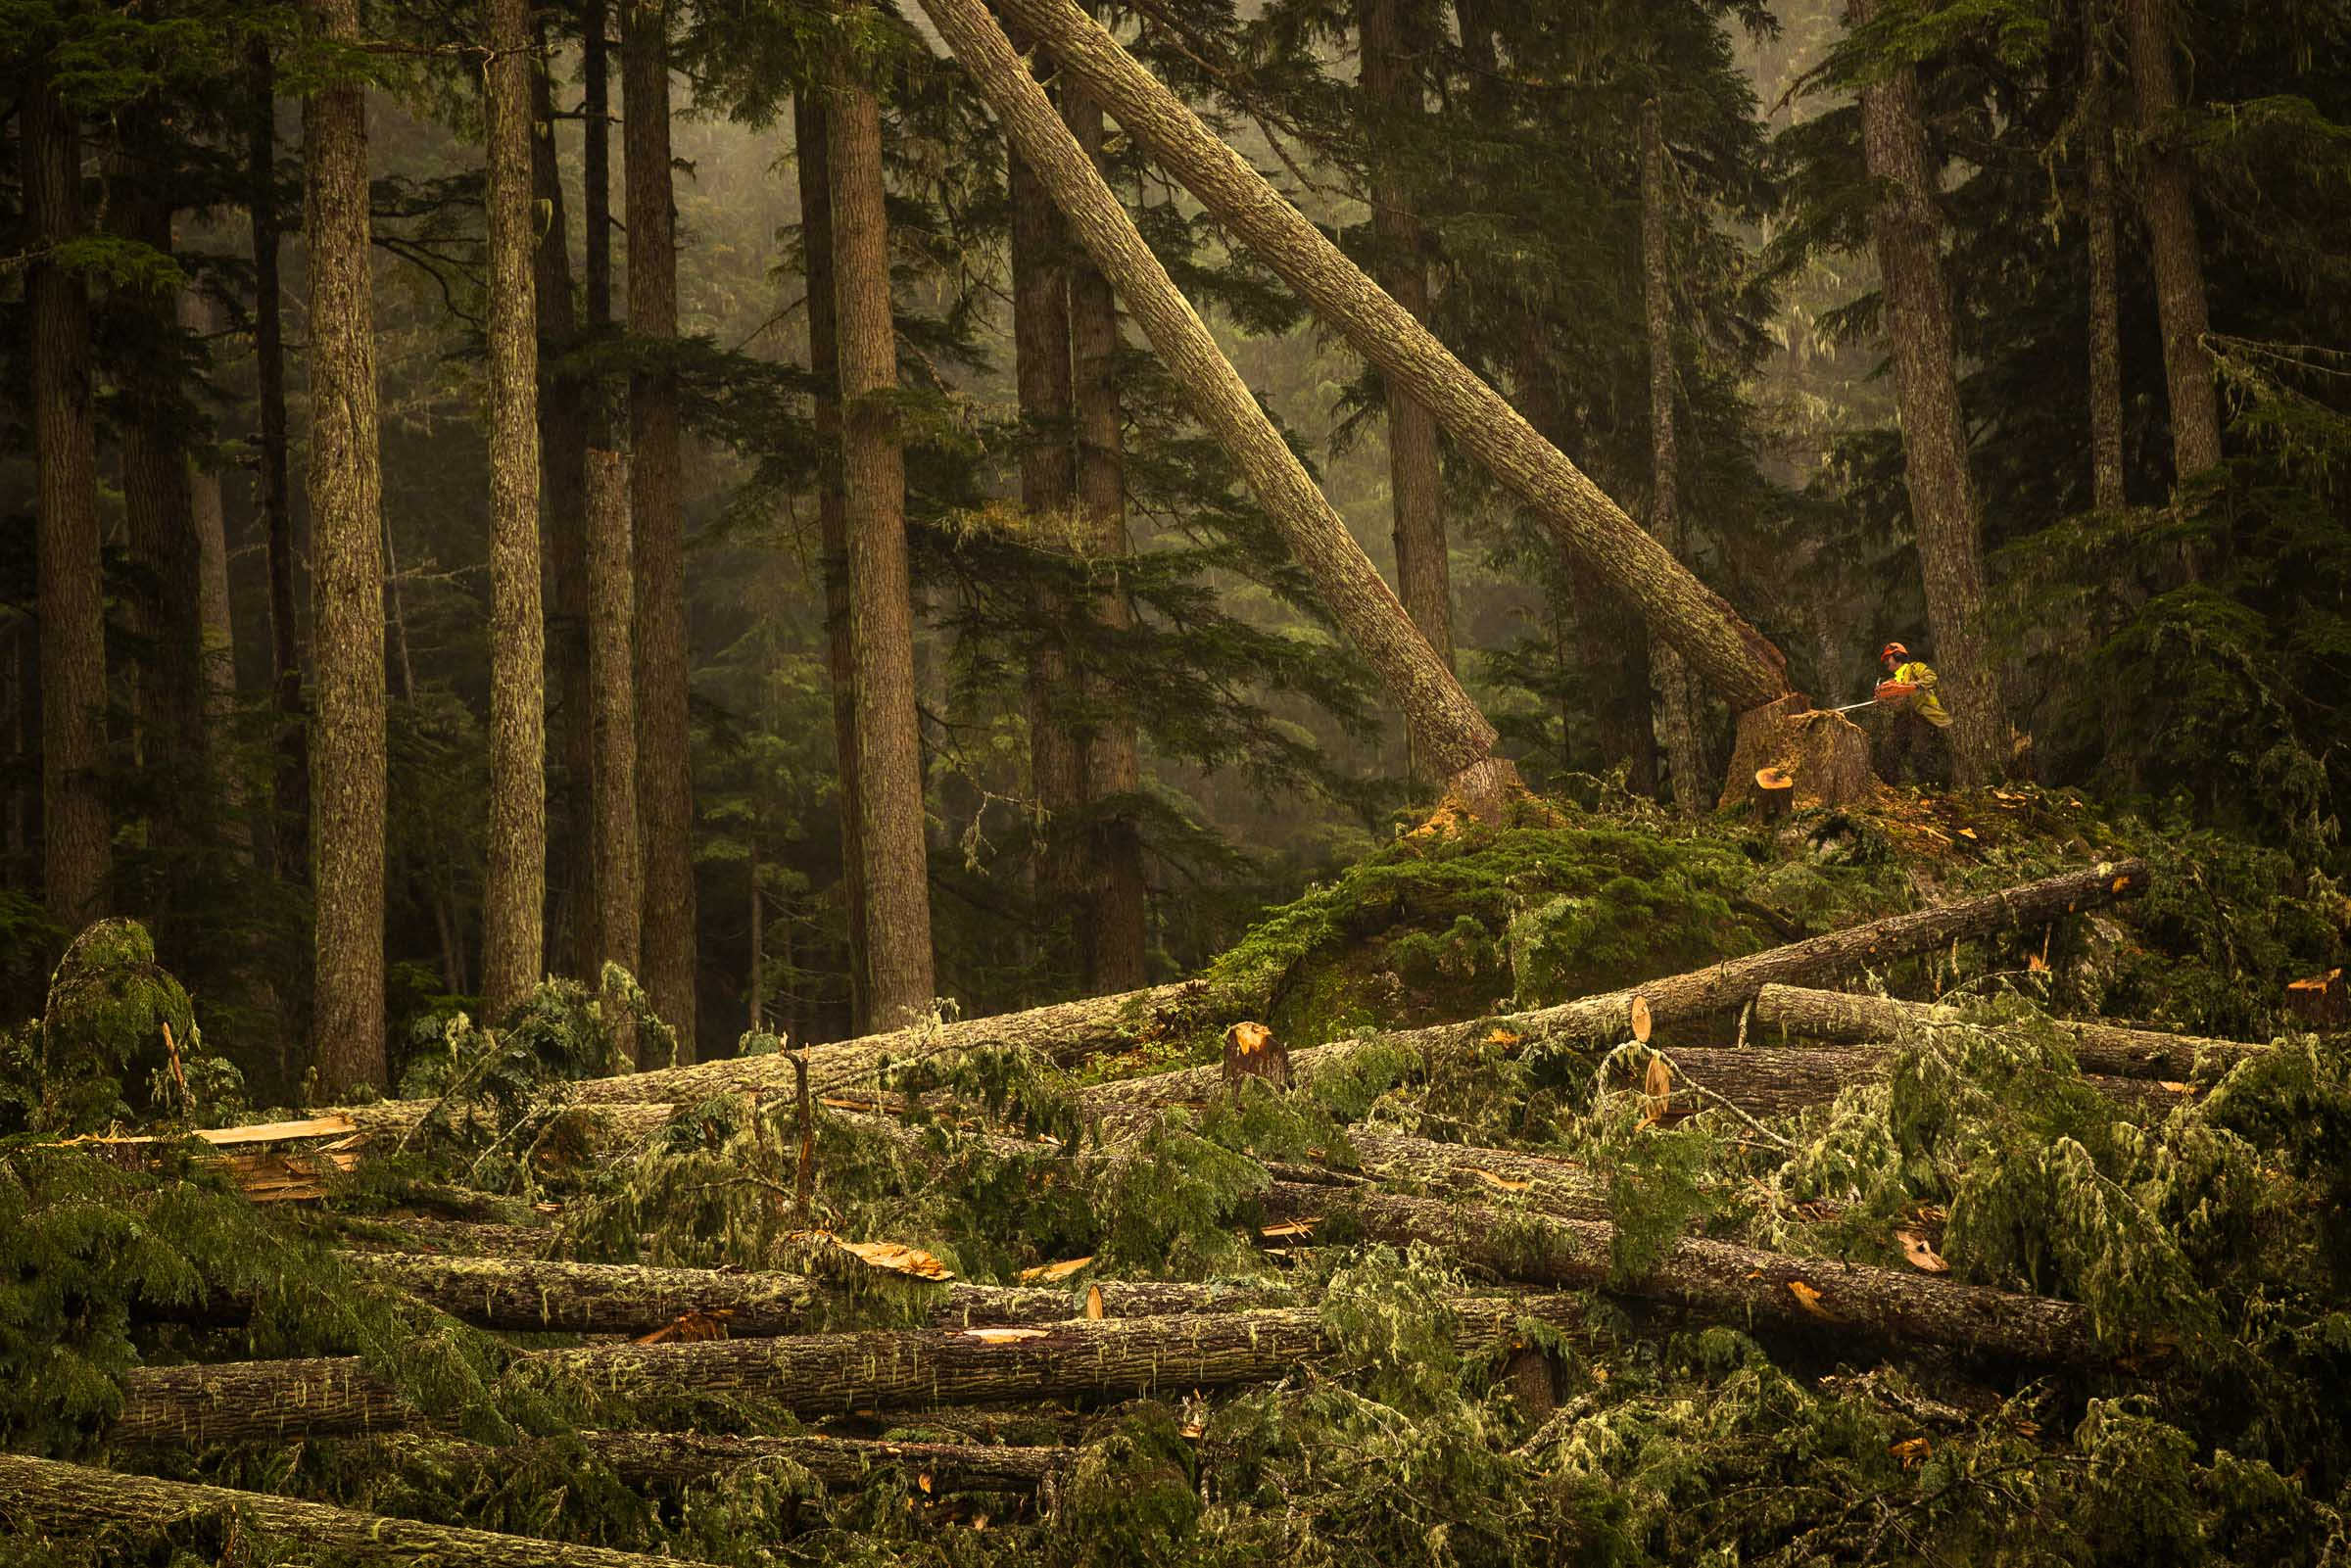 Logger cutting down trees